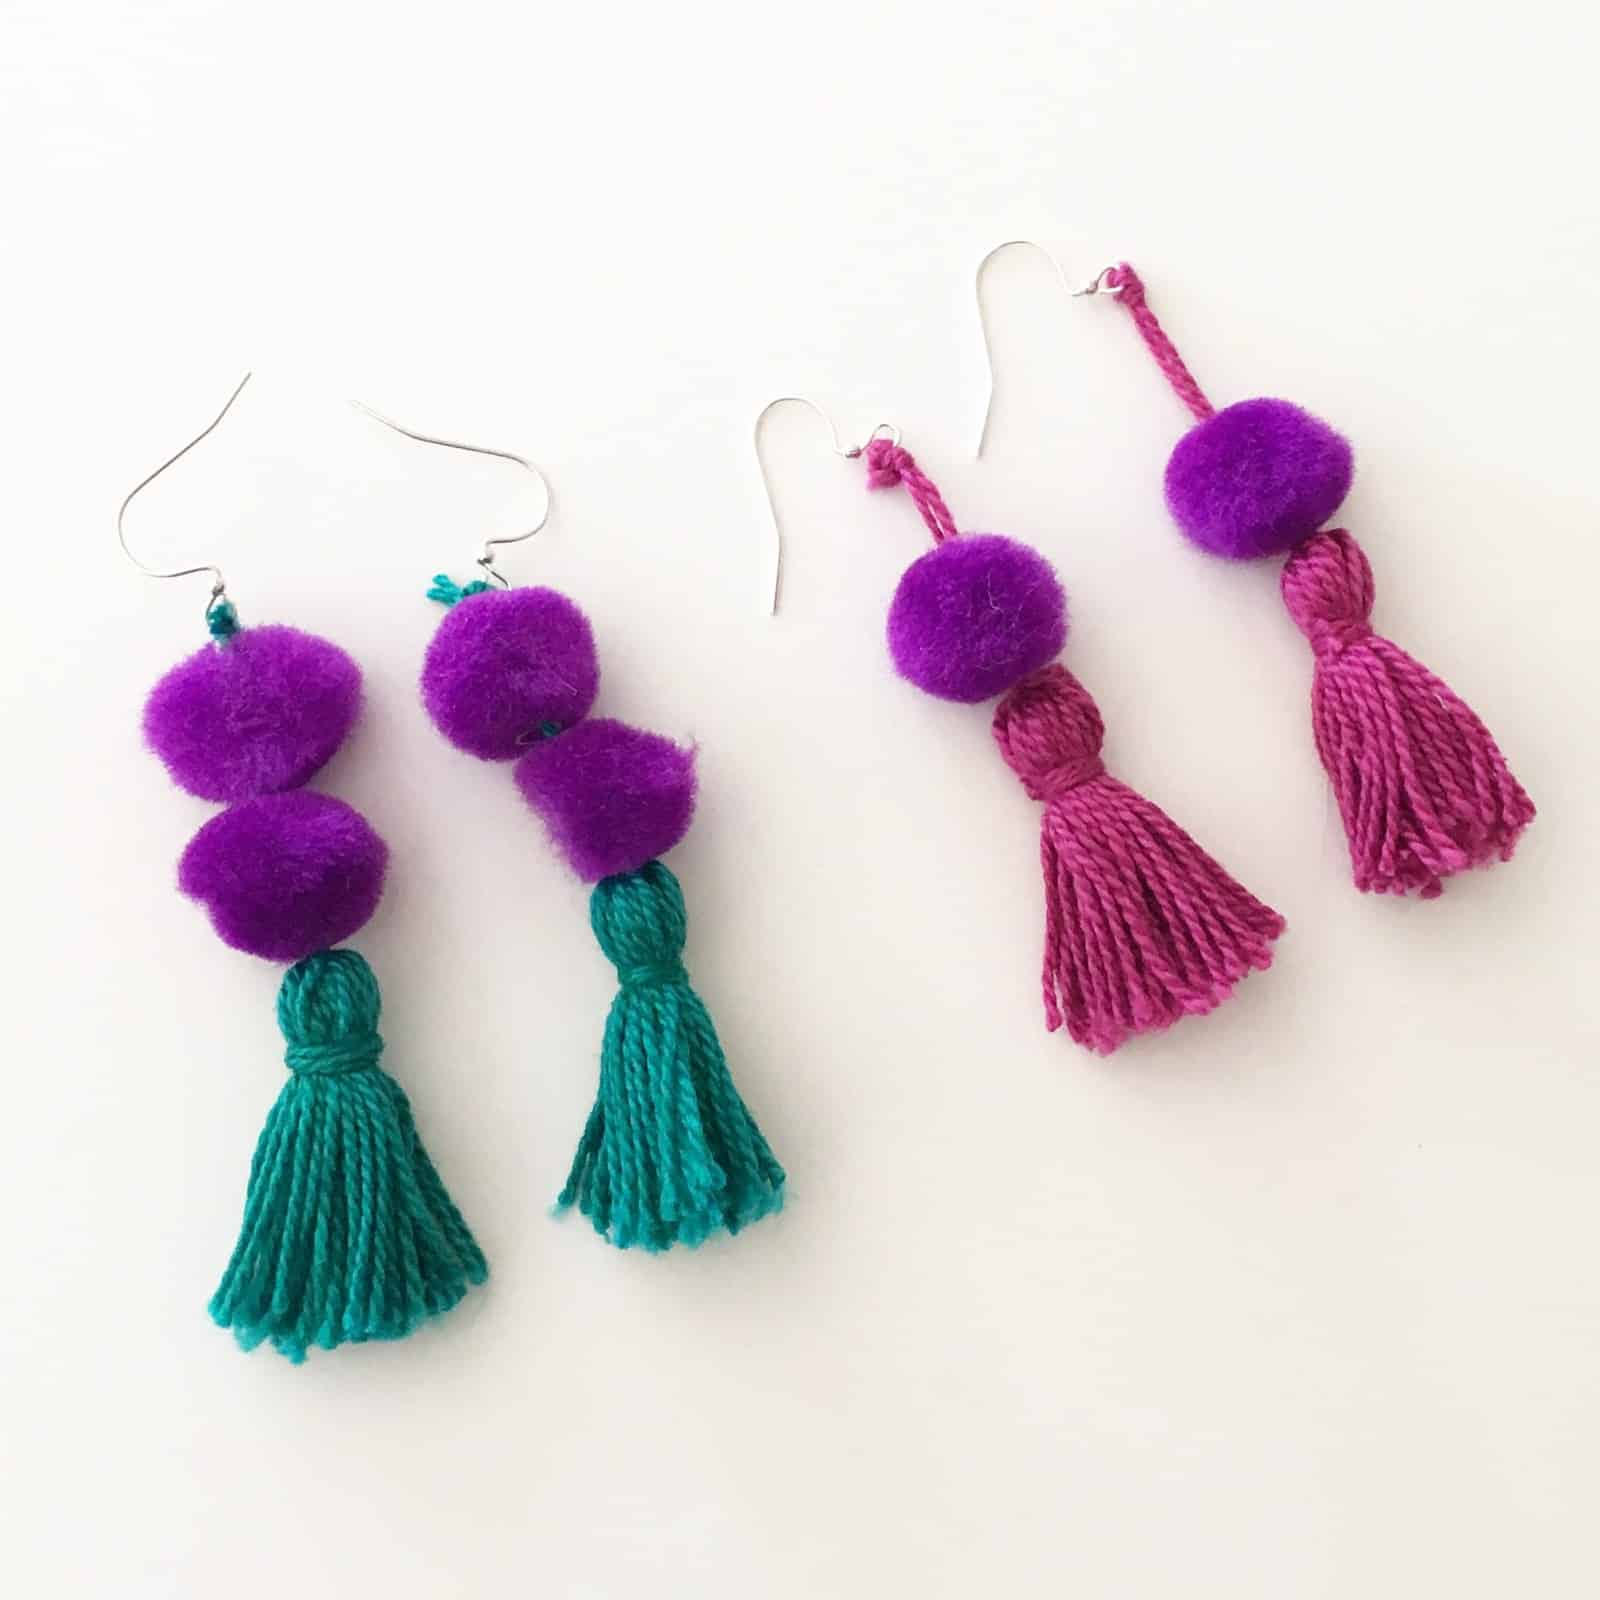 Pom poms and tassel earrings